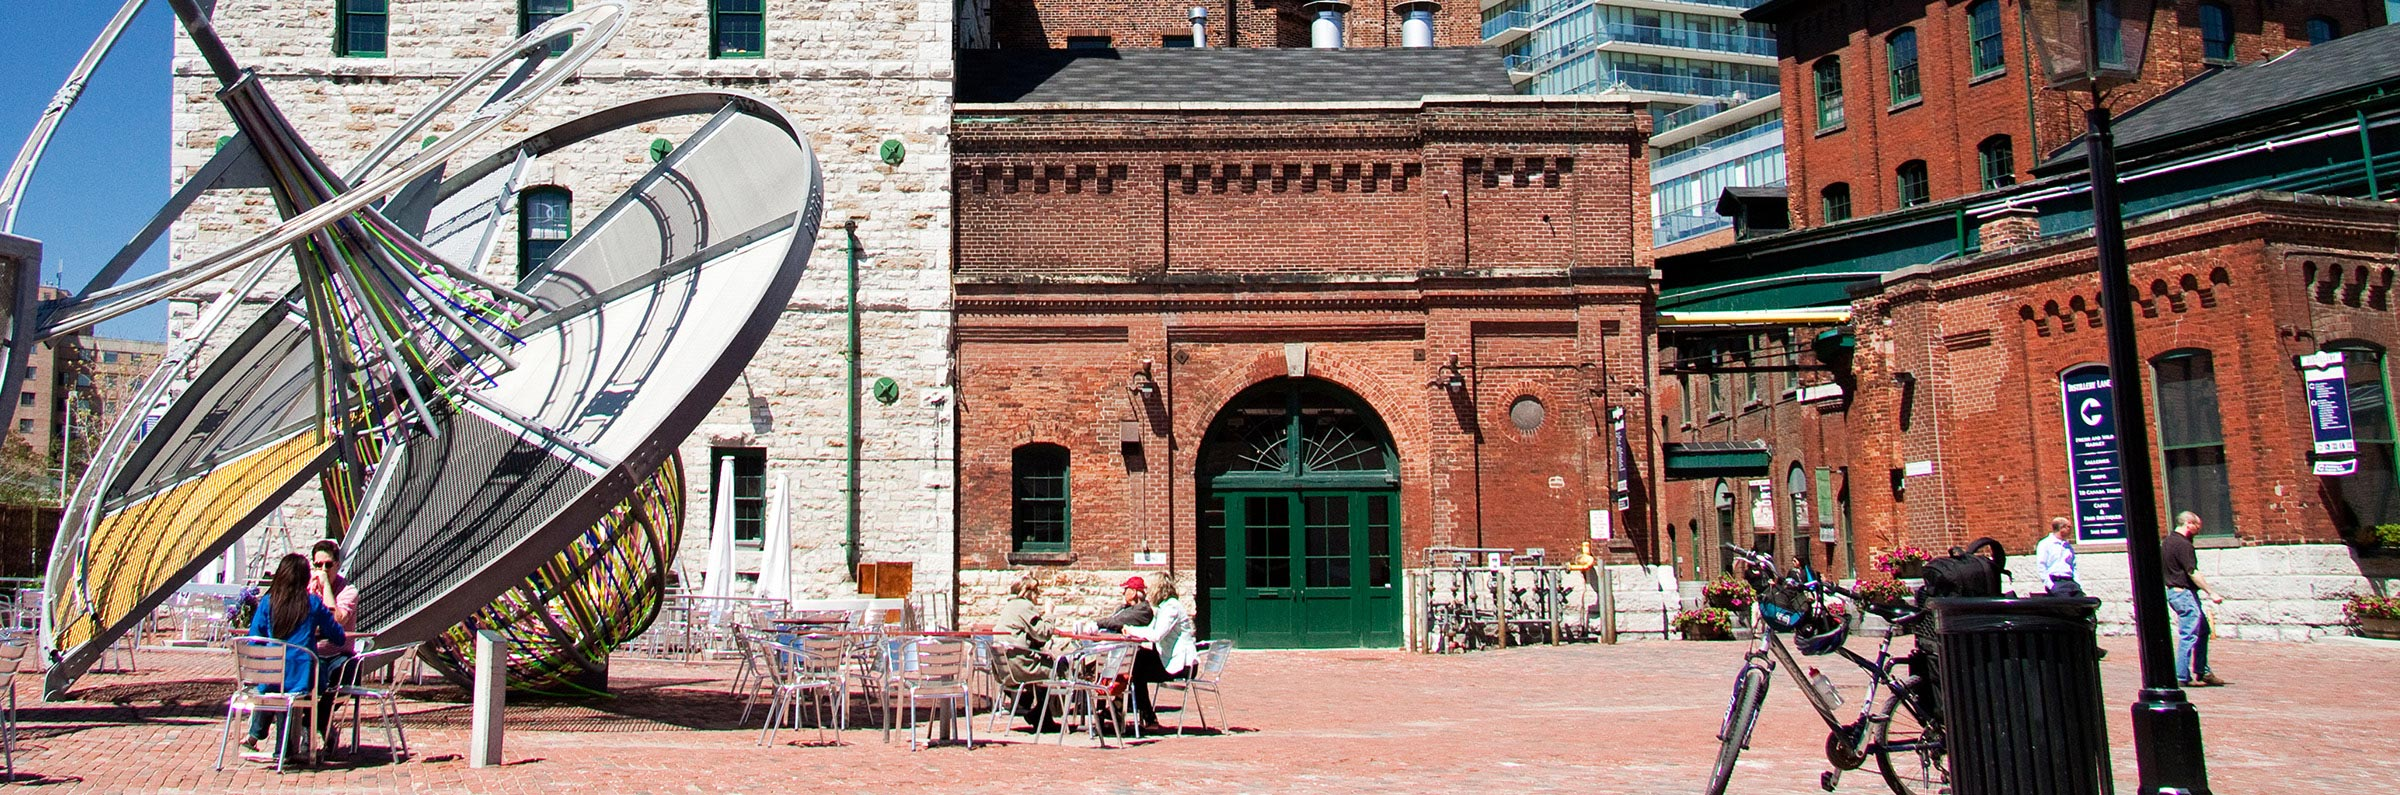 Sights and attractions in Toronto